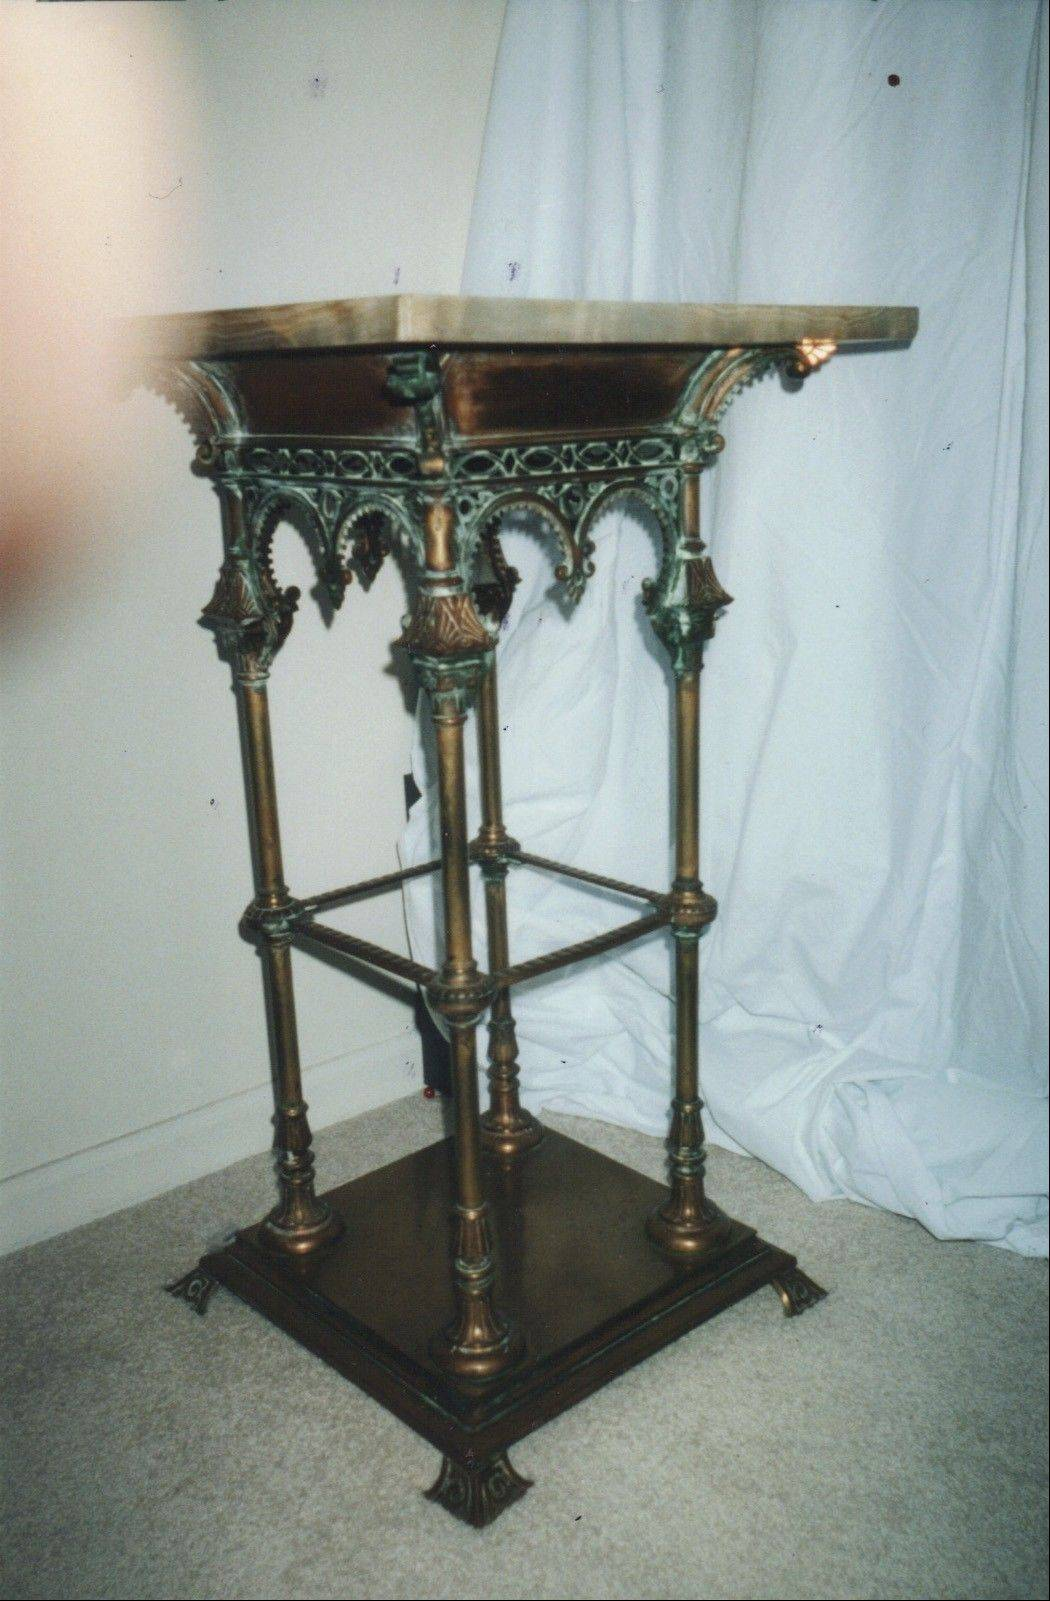 This brass plant stand is late Victorian in the Gothic Revival style.